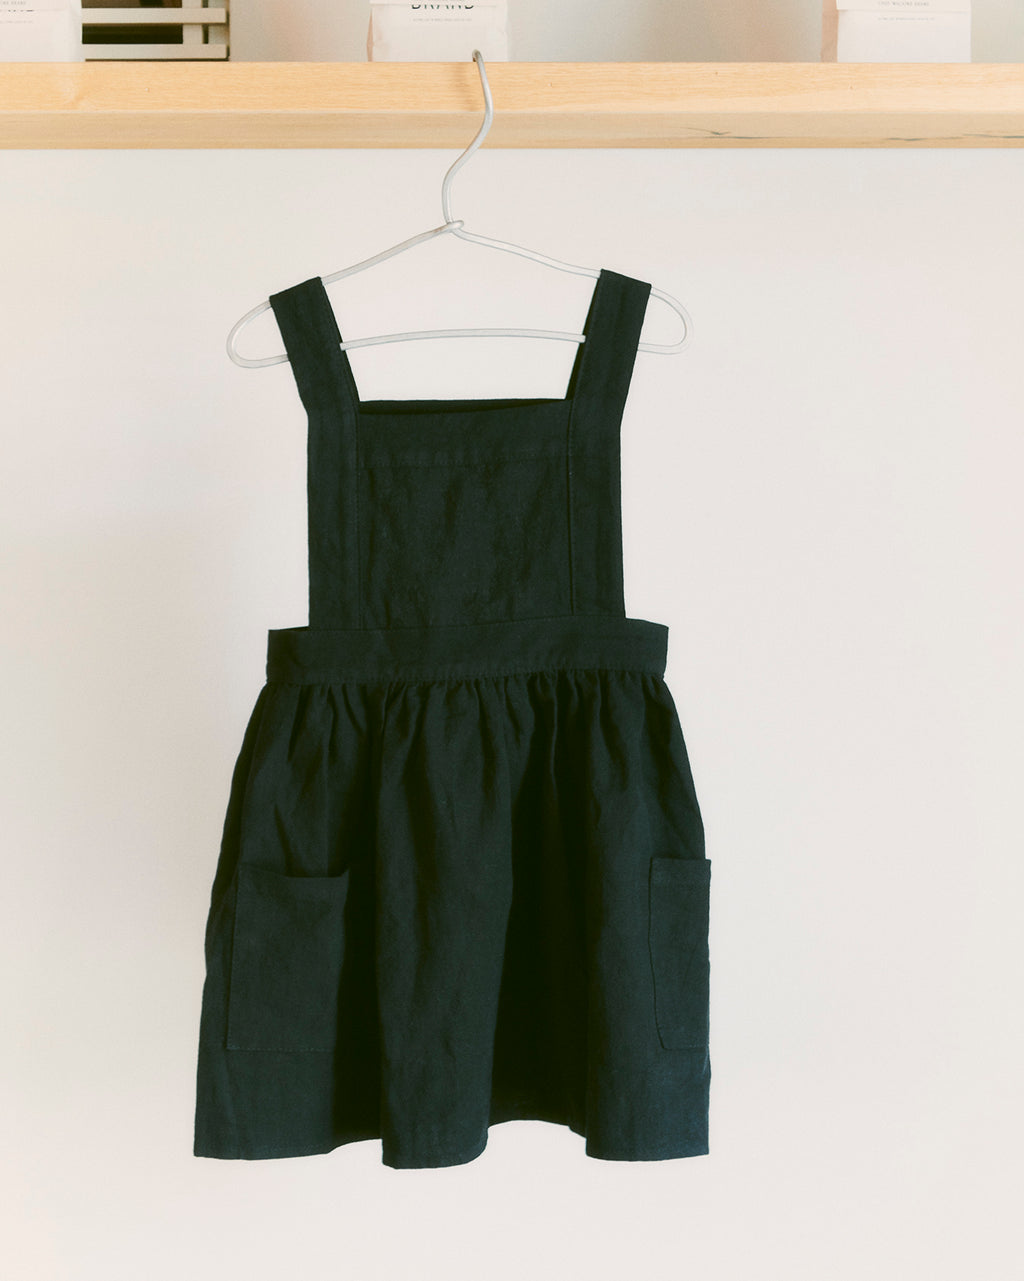 Cheengoo Pinafore Apron - Black